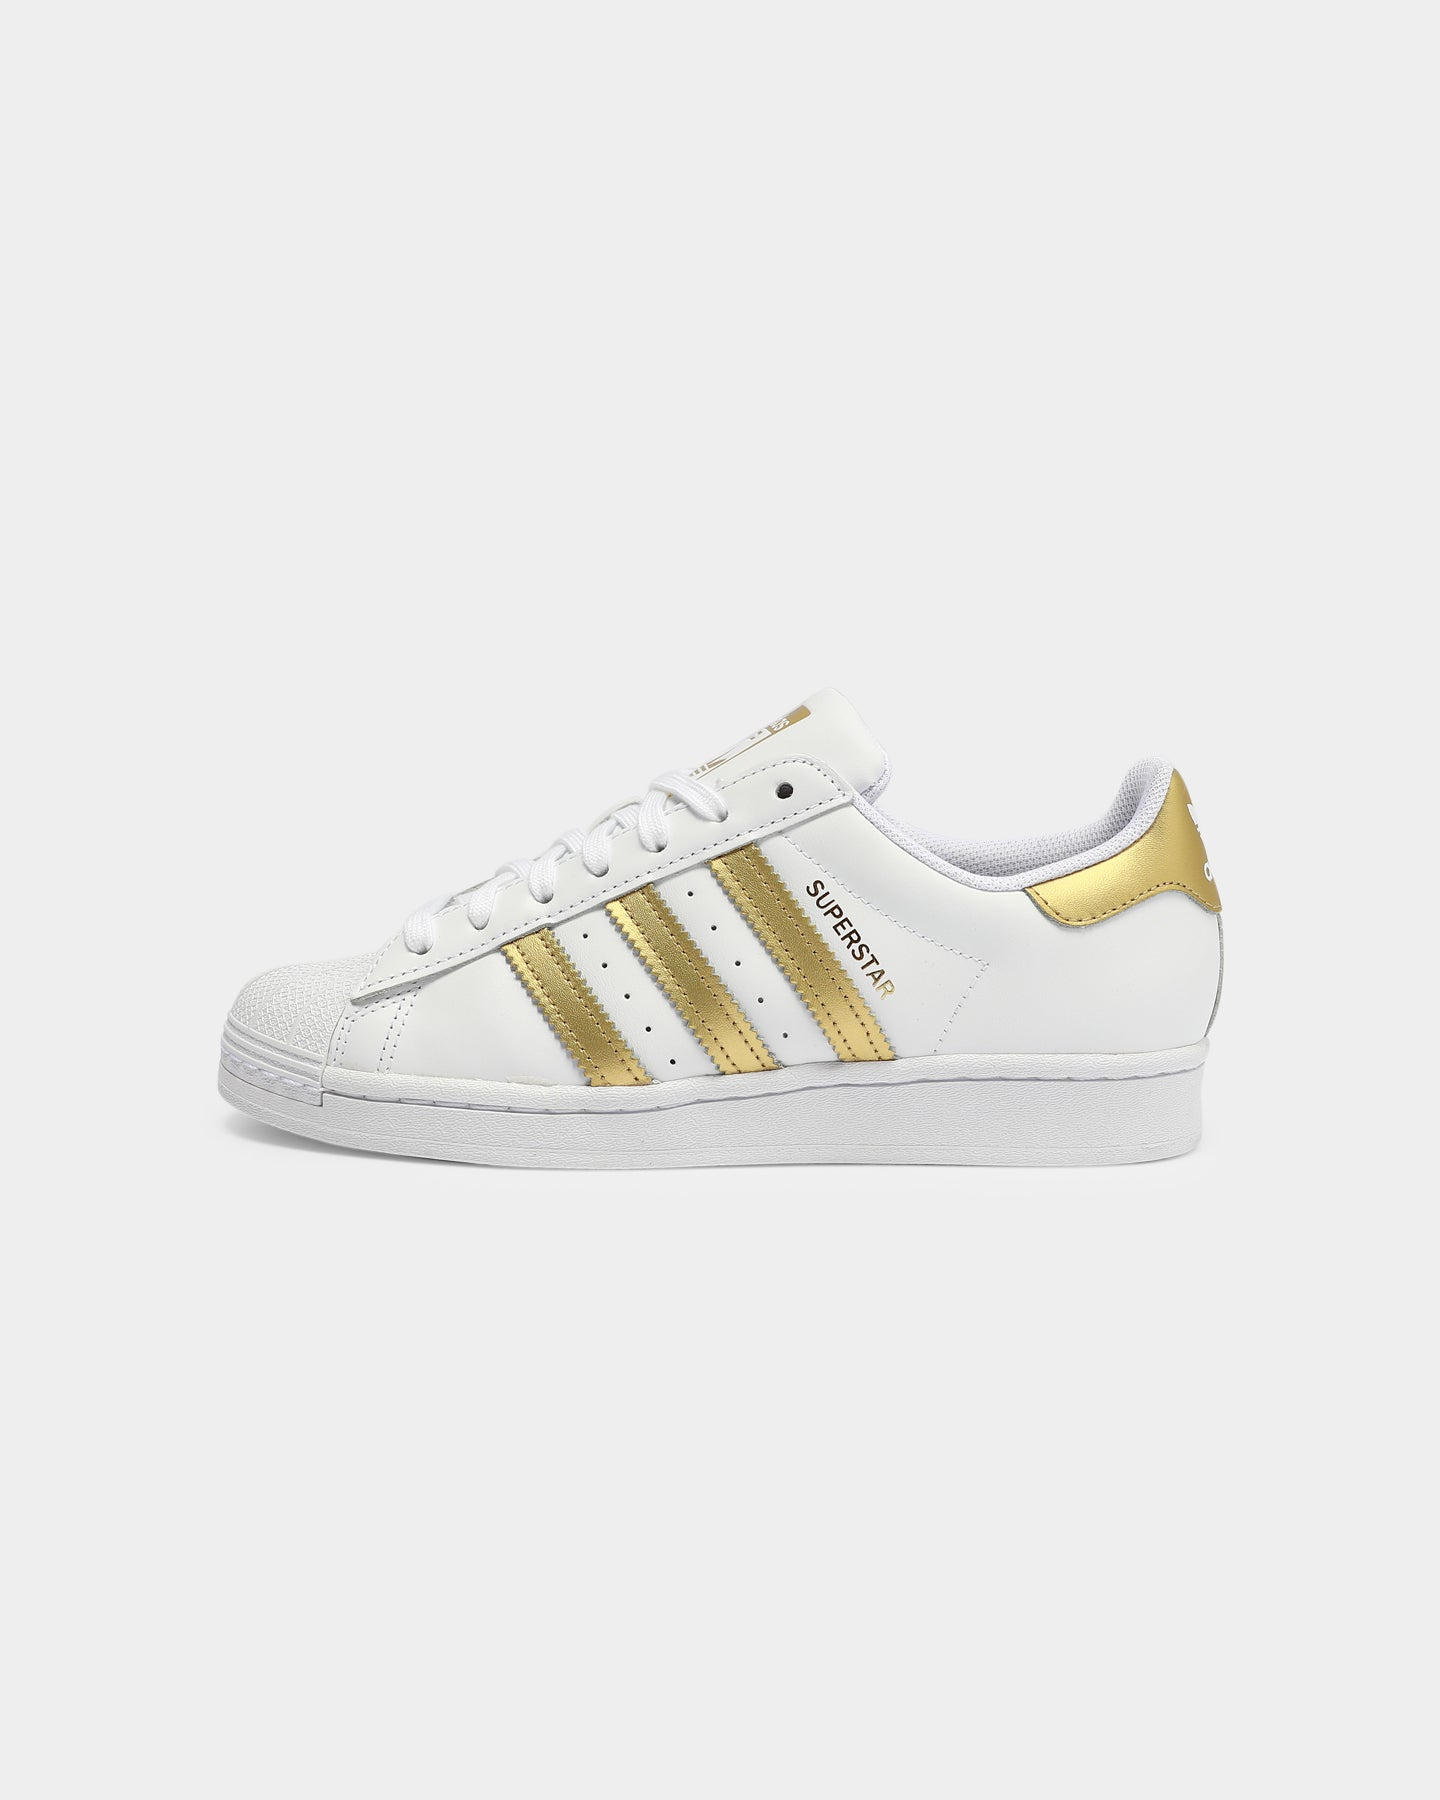 Superstar White/Gold   Culture Kings